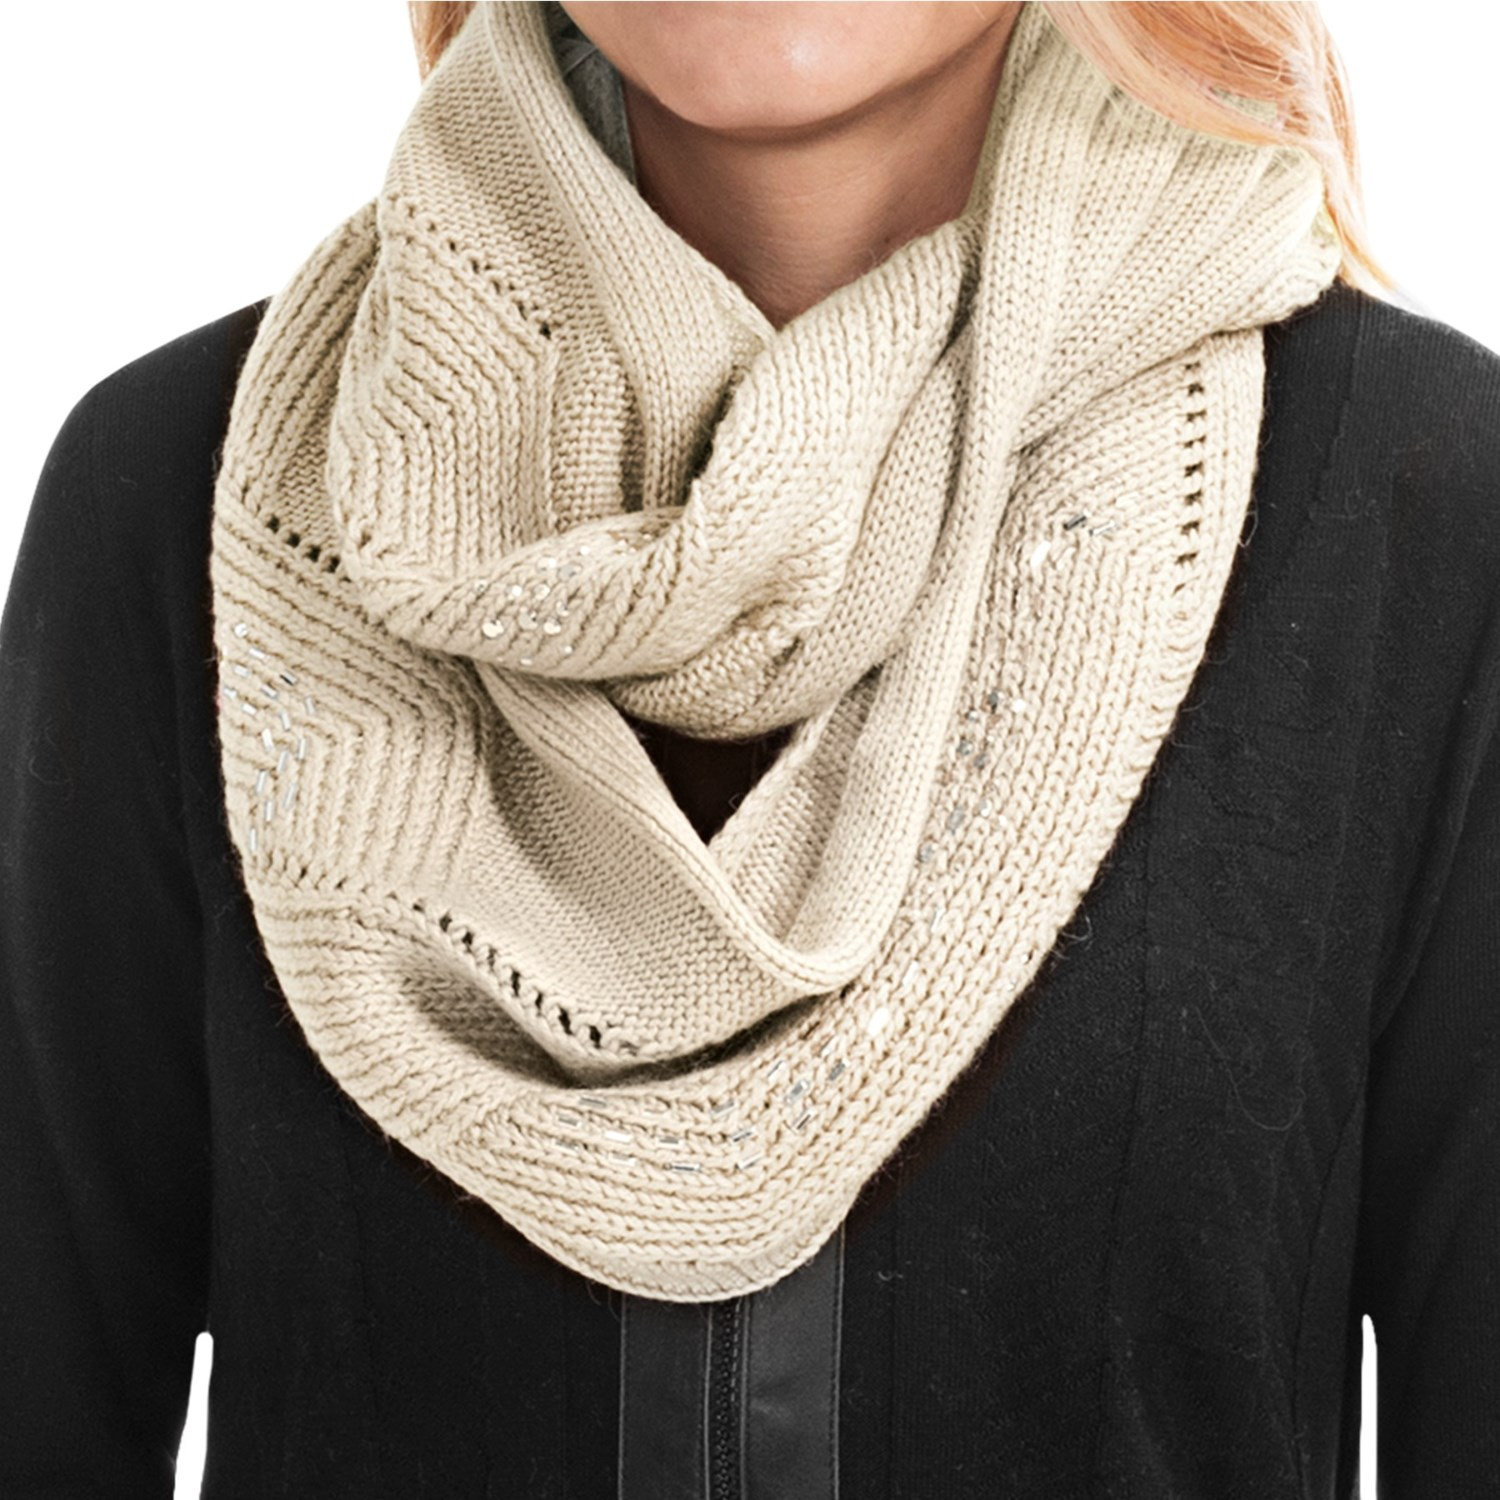 Laundry By Design Embellished Cable Infinity Scarf For